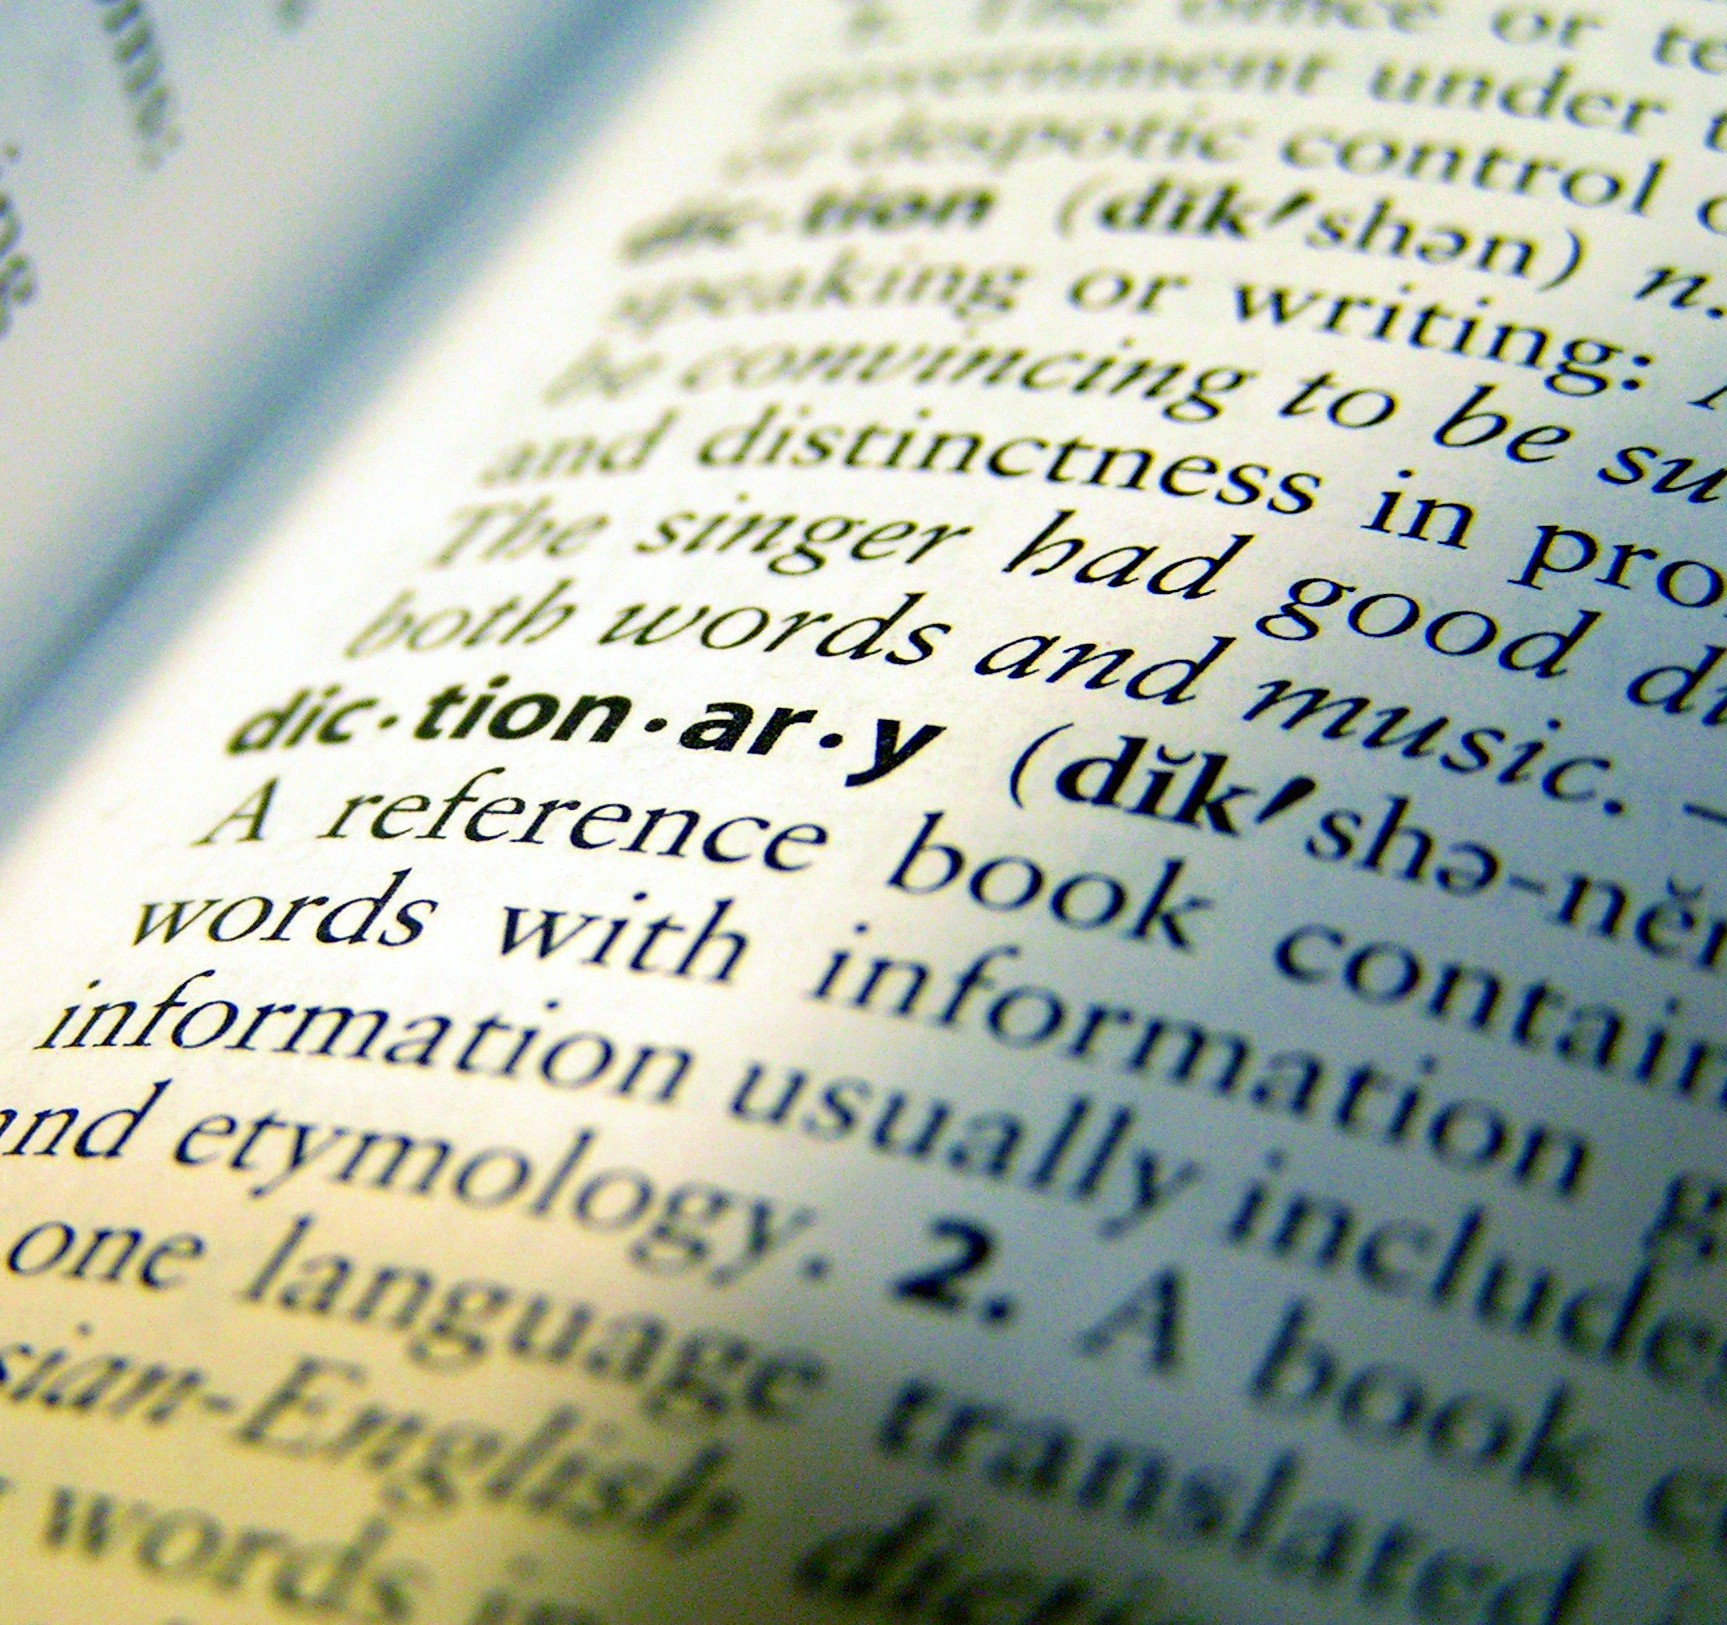 Picture of part of a page from a dictionary.